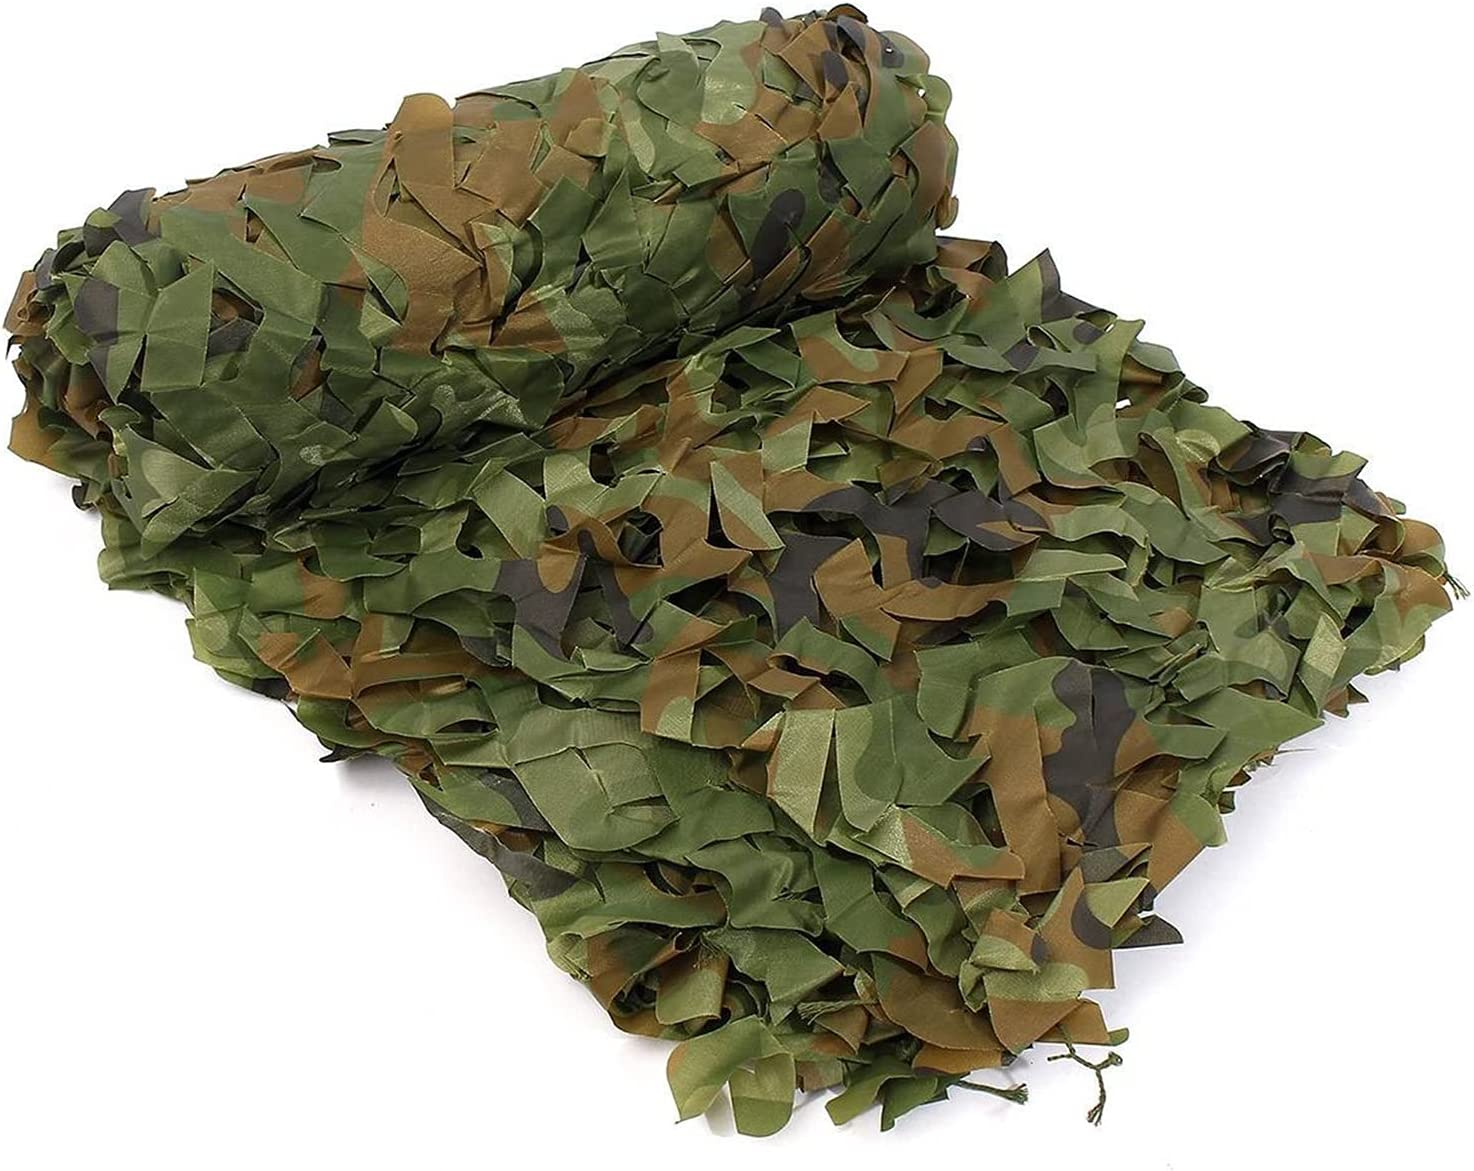 Outdoor Multi-Size Hunting Military Camouflage Superlatite Woodland Arm Nets Ranking TOP5